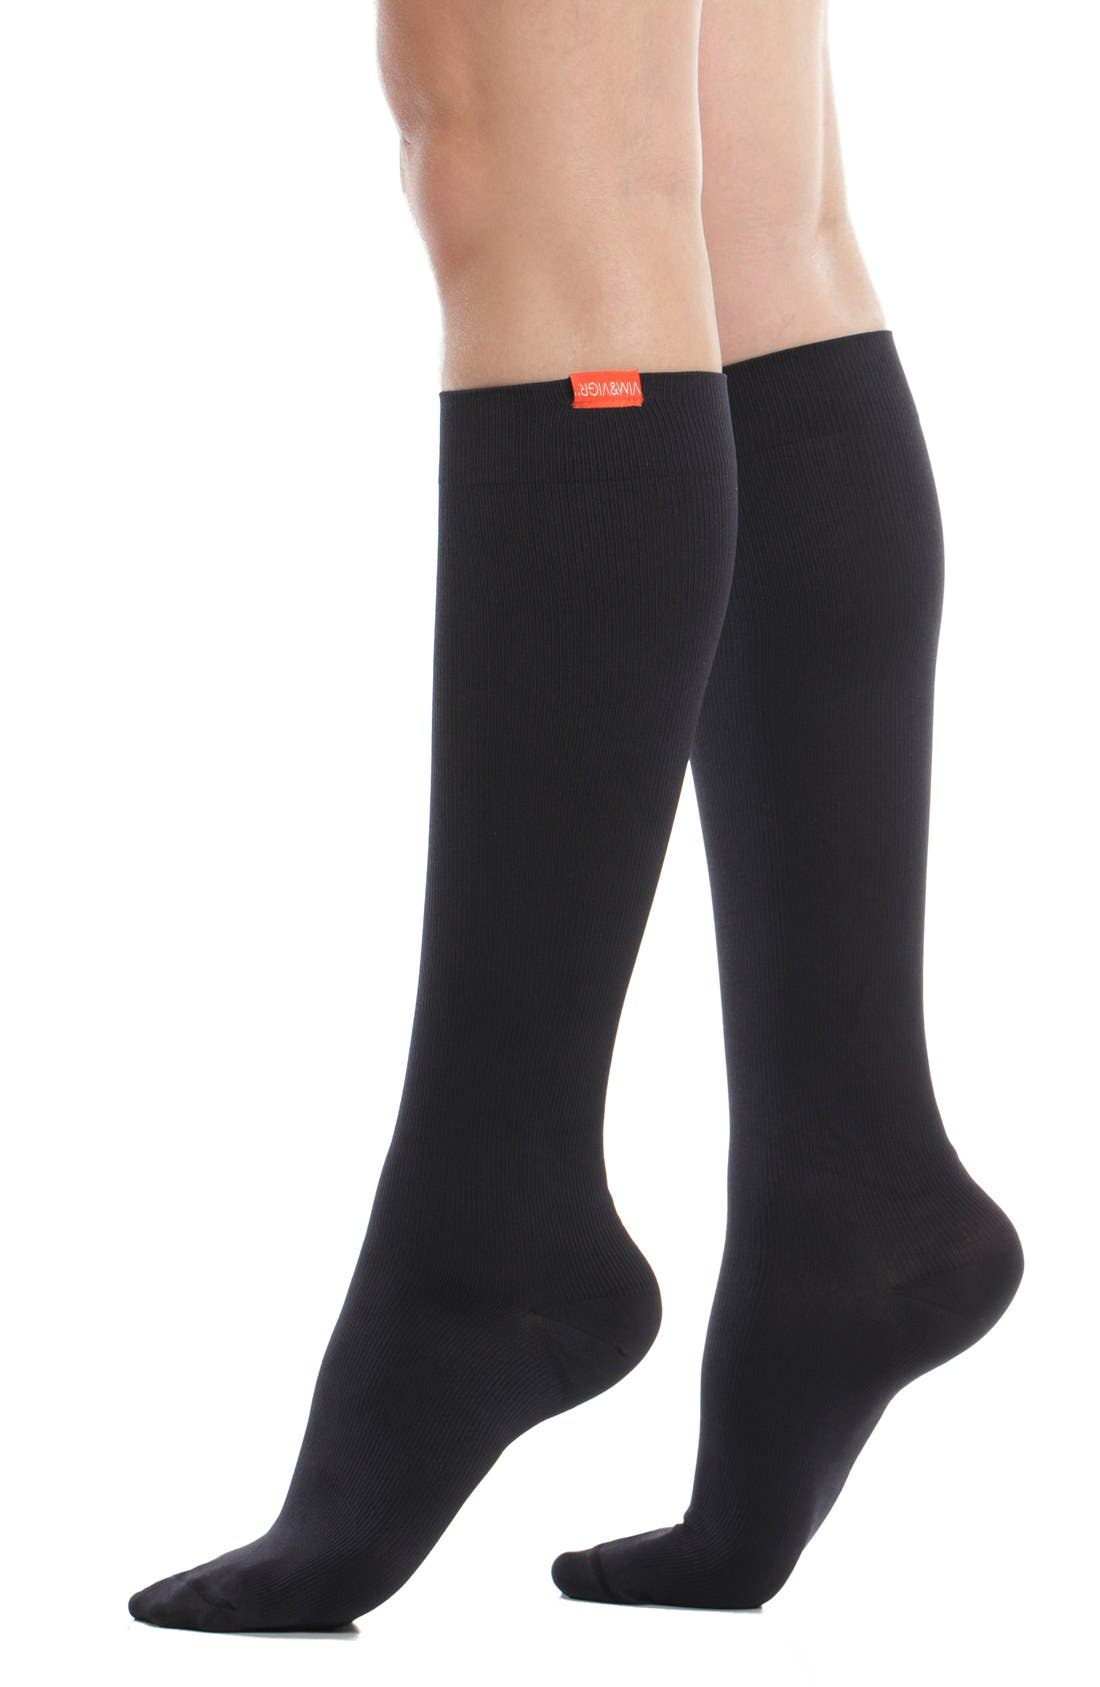 Alternate Image 1 Selected - VIM & VIGR Solid Graduated Compression Trouser Socks